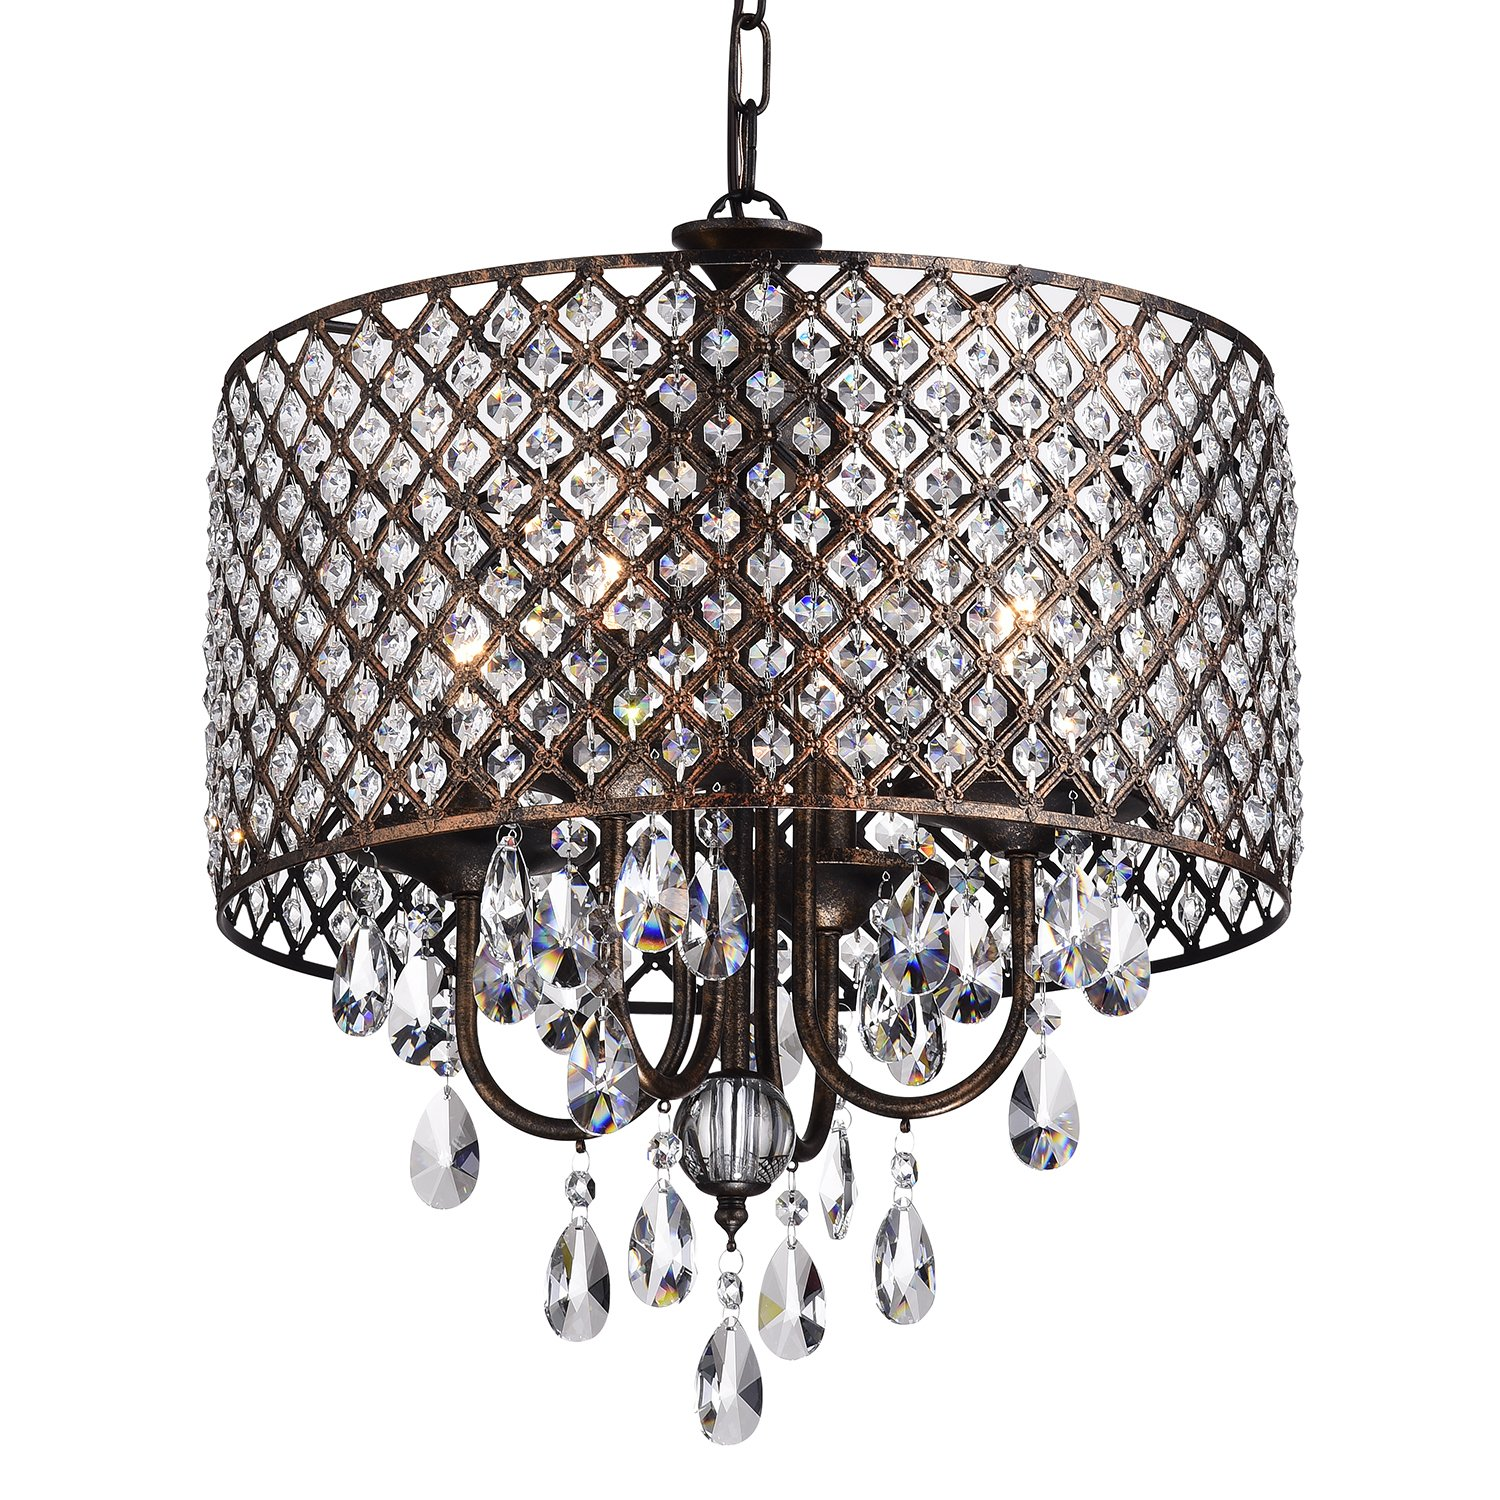 Mariella Antique Copper Round Drum Shade 4-light Crystal Chandelier Ceiling  Fixture - - Amazon.com - Mariella Antique Copper Round Drum Shade 4-light Crystal Chandelier